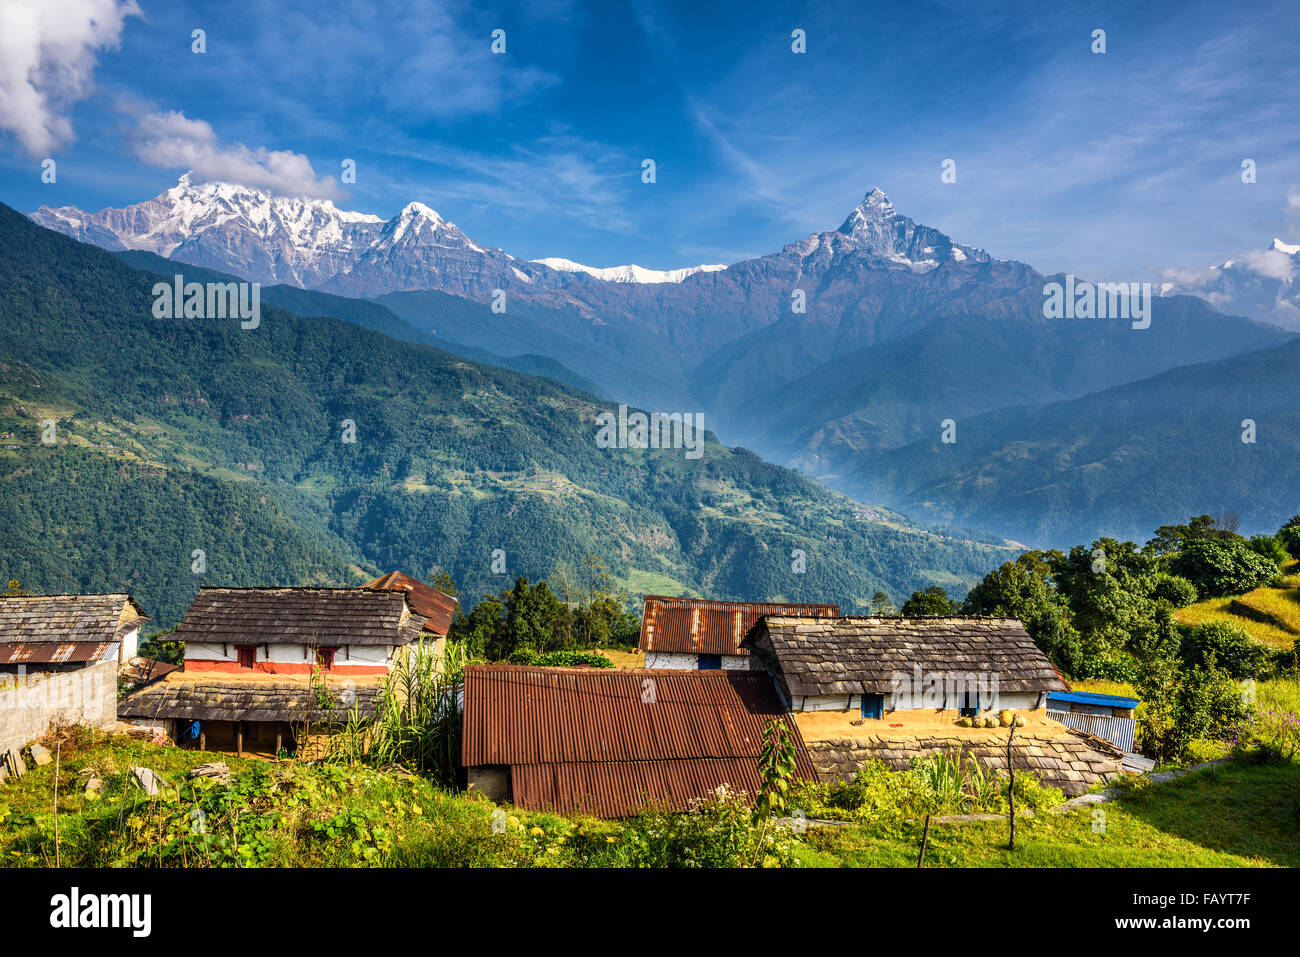 Nepalese village in the Himalaya mountains near Pokhara in Nepal - Stock Image